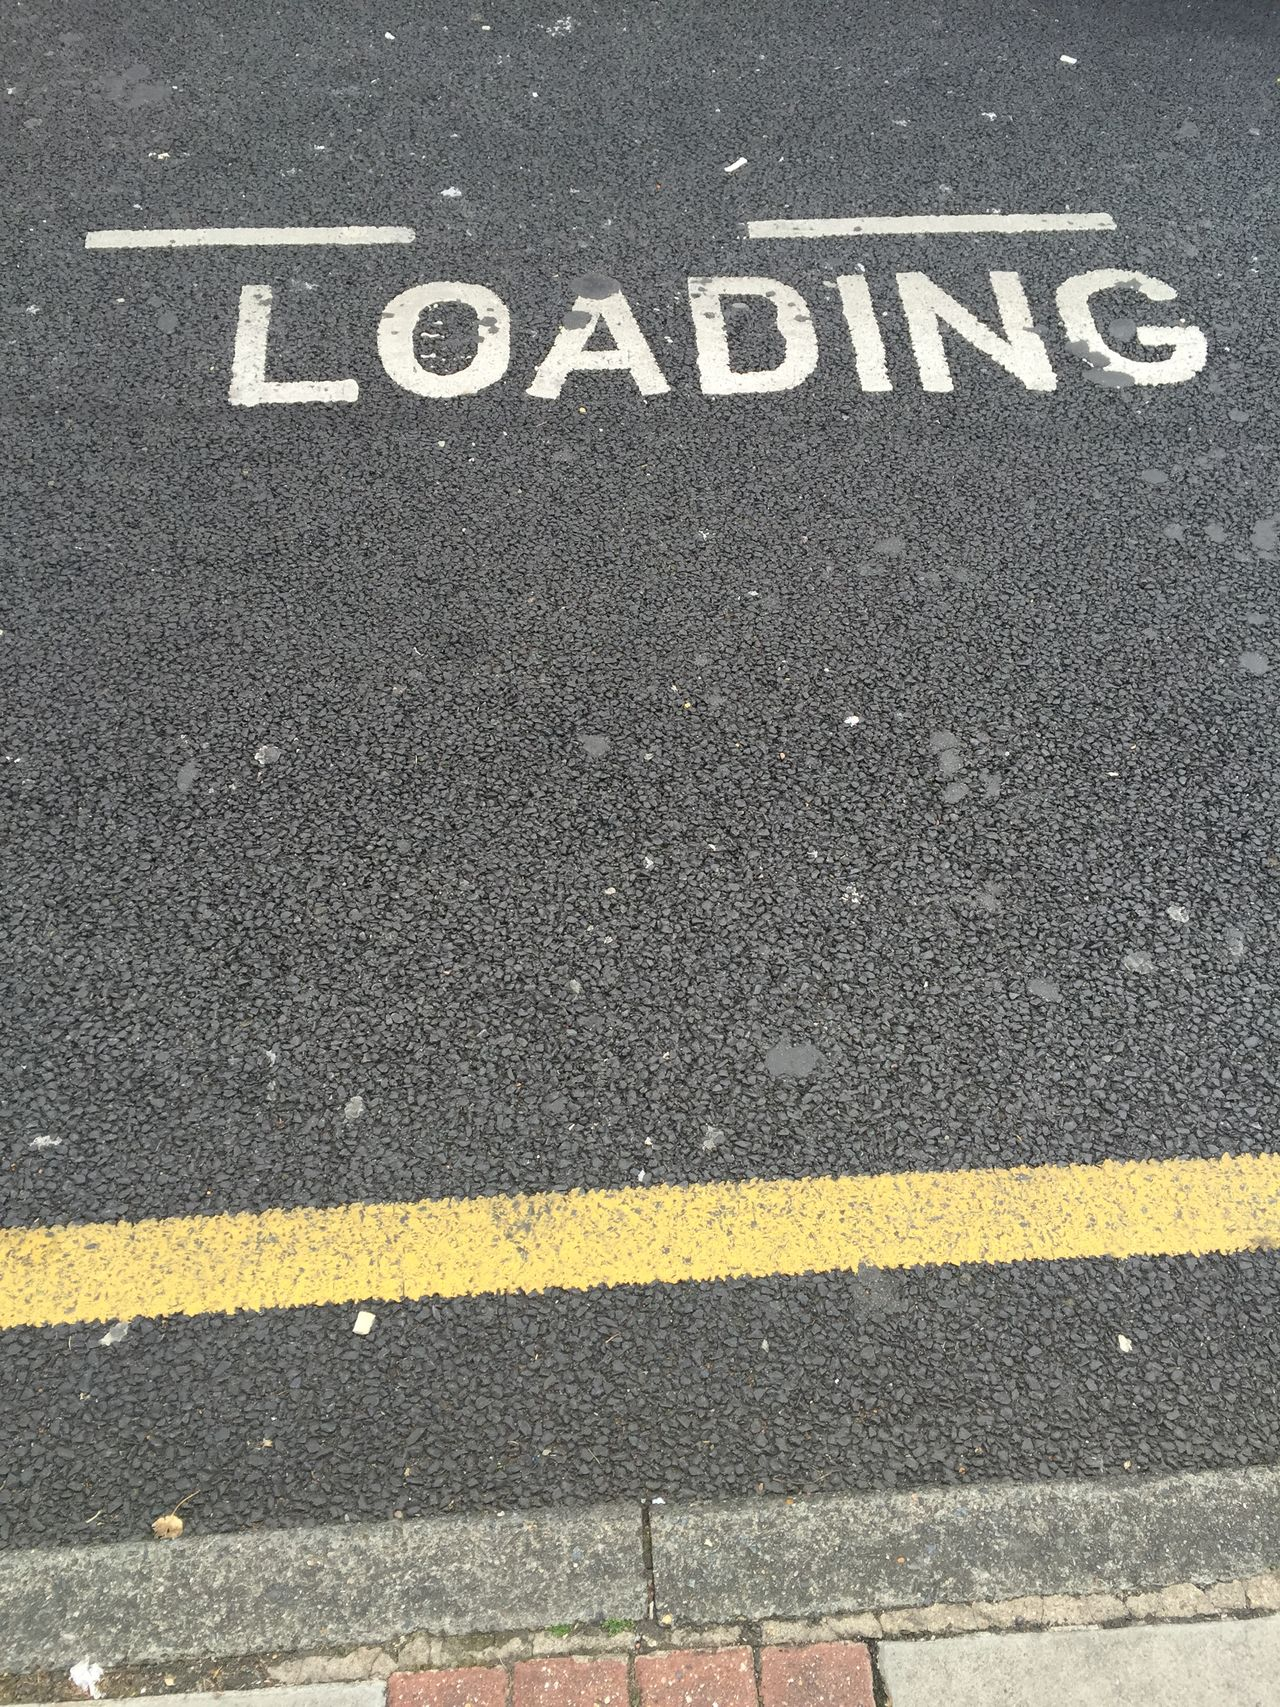 Loading bay road markings sign on tarmac Roadside Road Roadsign Loading Loading Bay Loadingbay